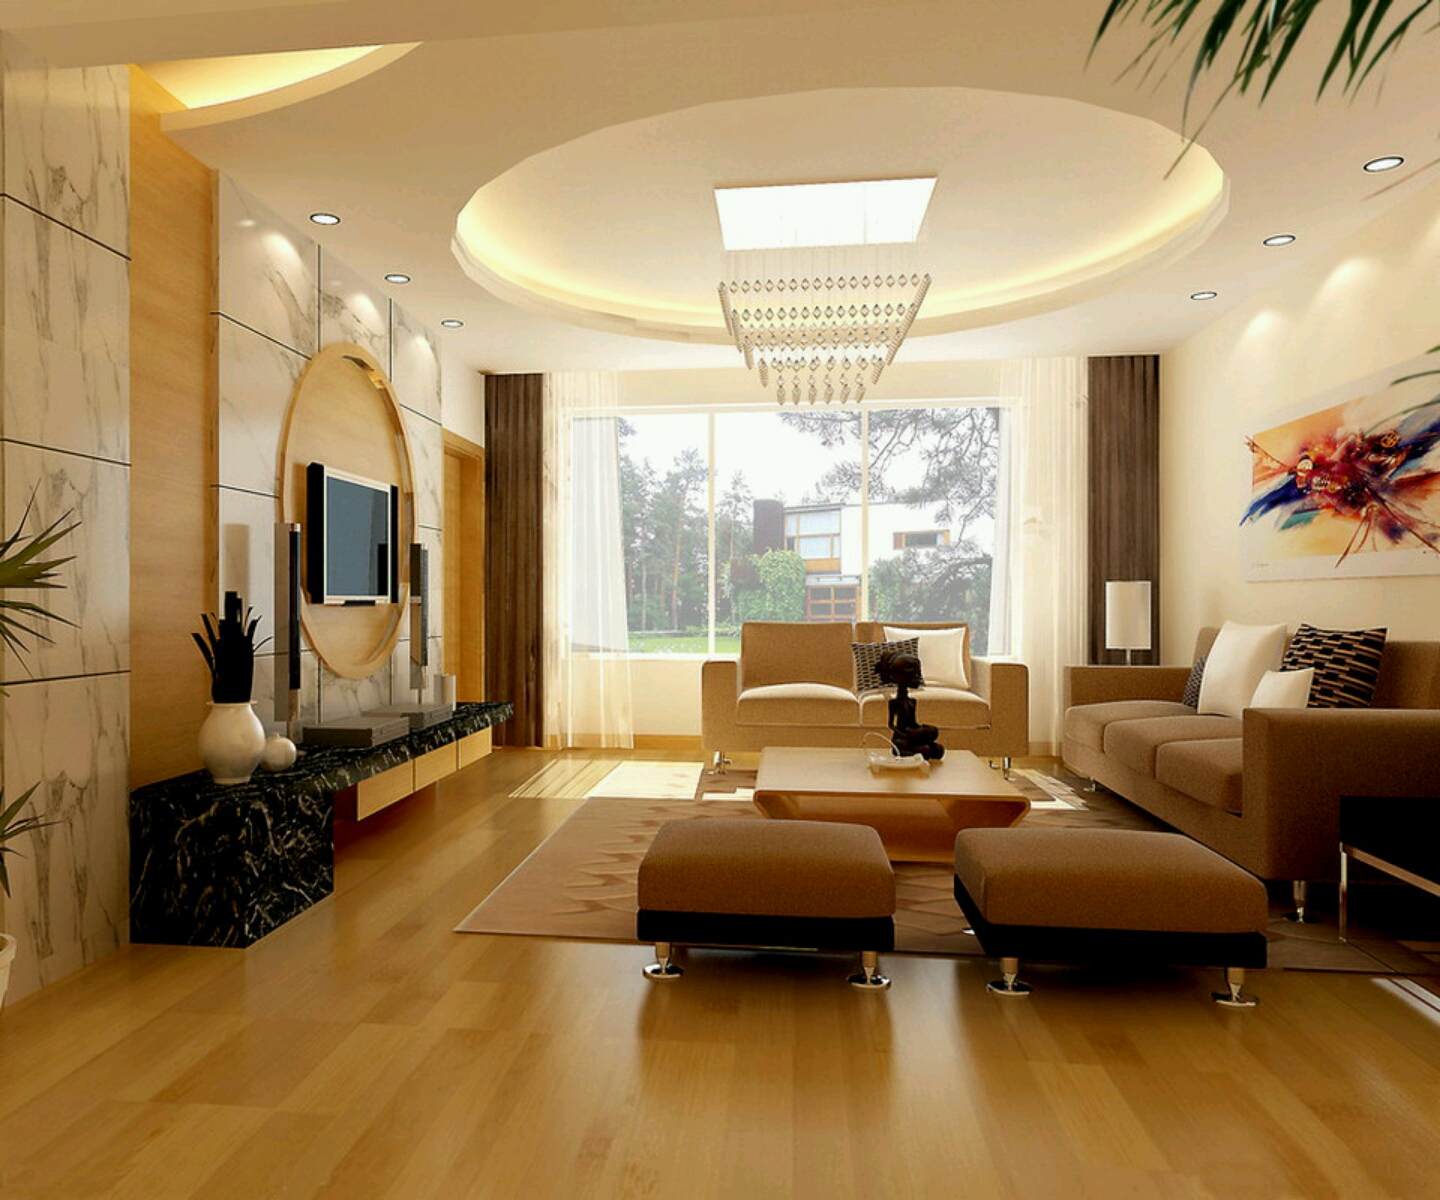 Modern interior decoration living rooms ceiling designs for Home living room ideas